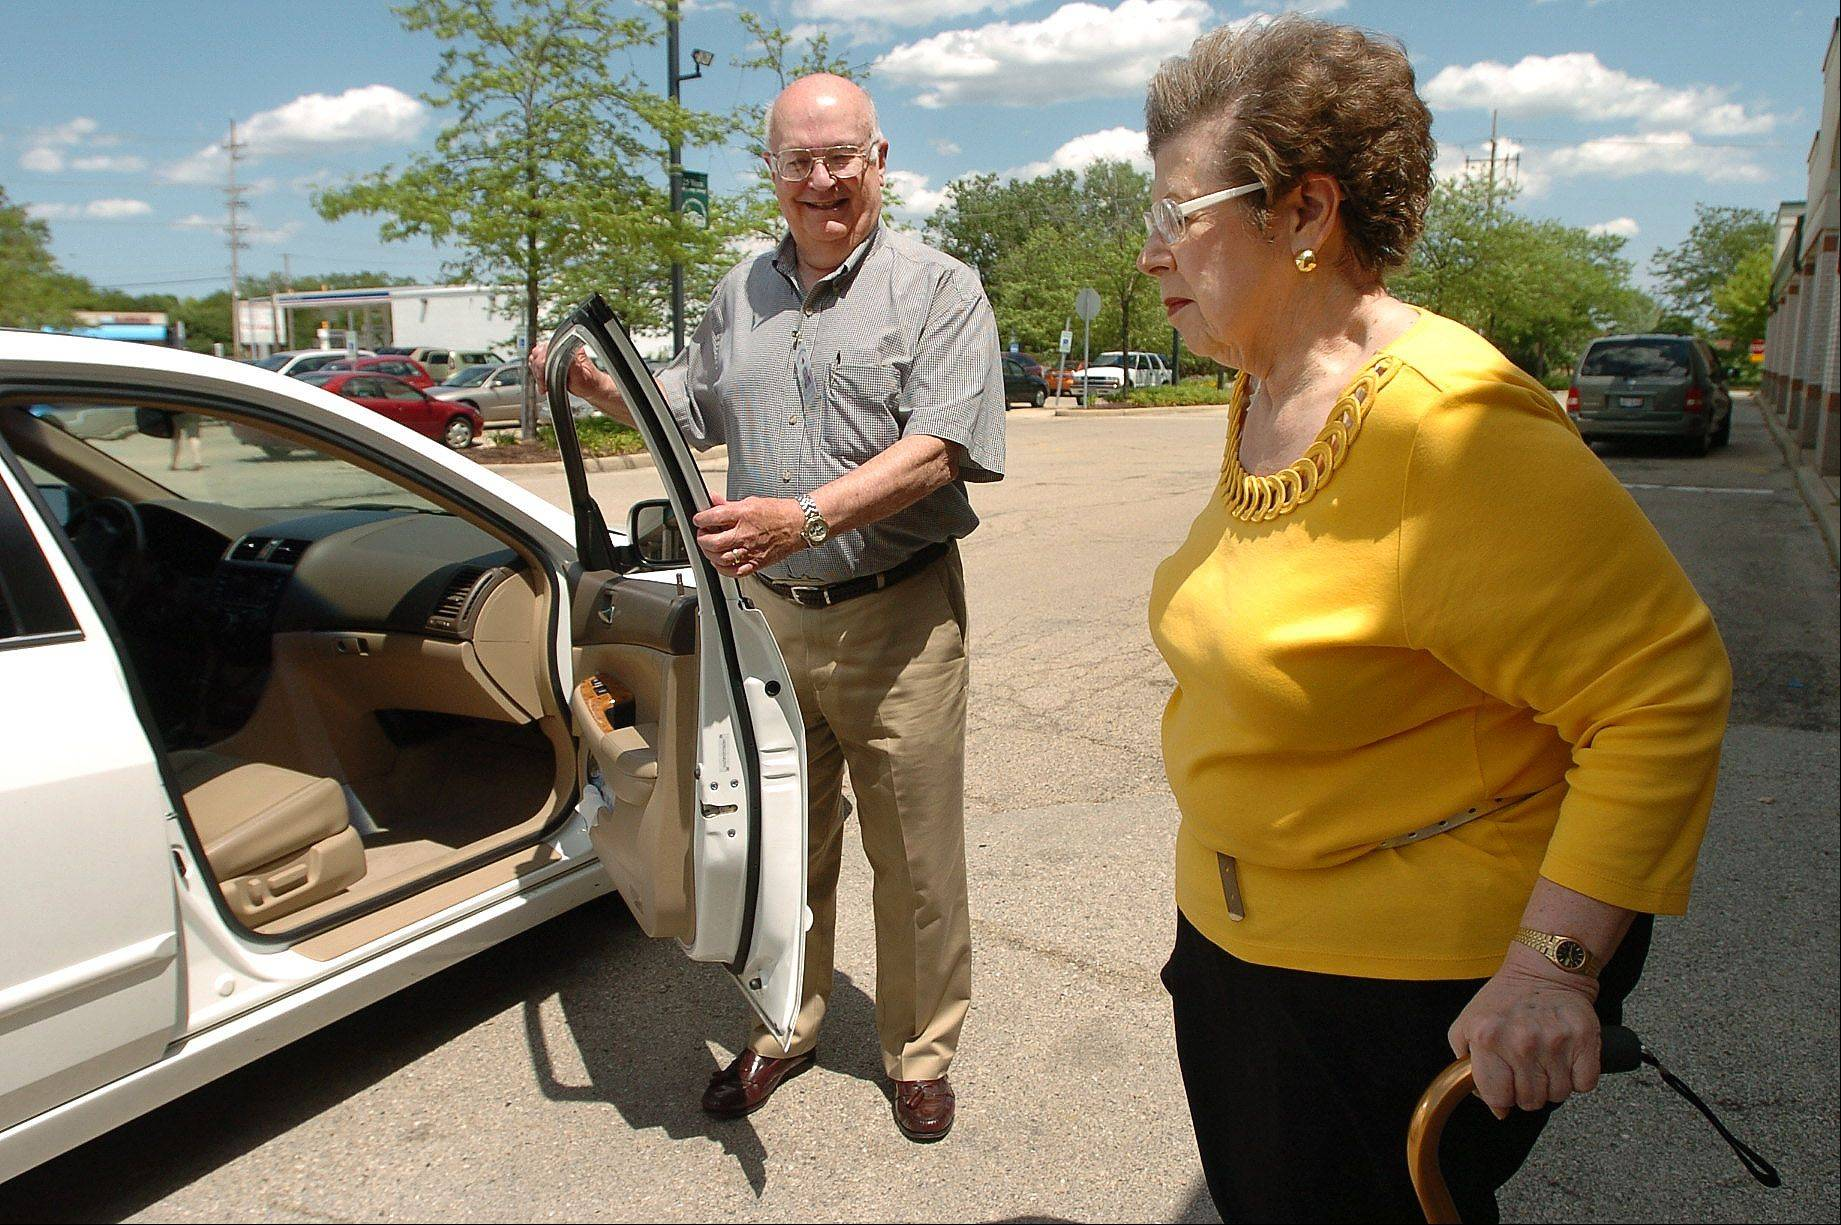 Escorted Transportation Service Northwest volunteer driver Dan Quiery holds the car door open for Marcia Cale of Arlington Heights at the Arlington Heights Senior Center.